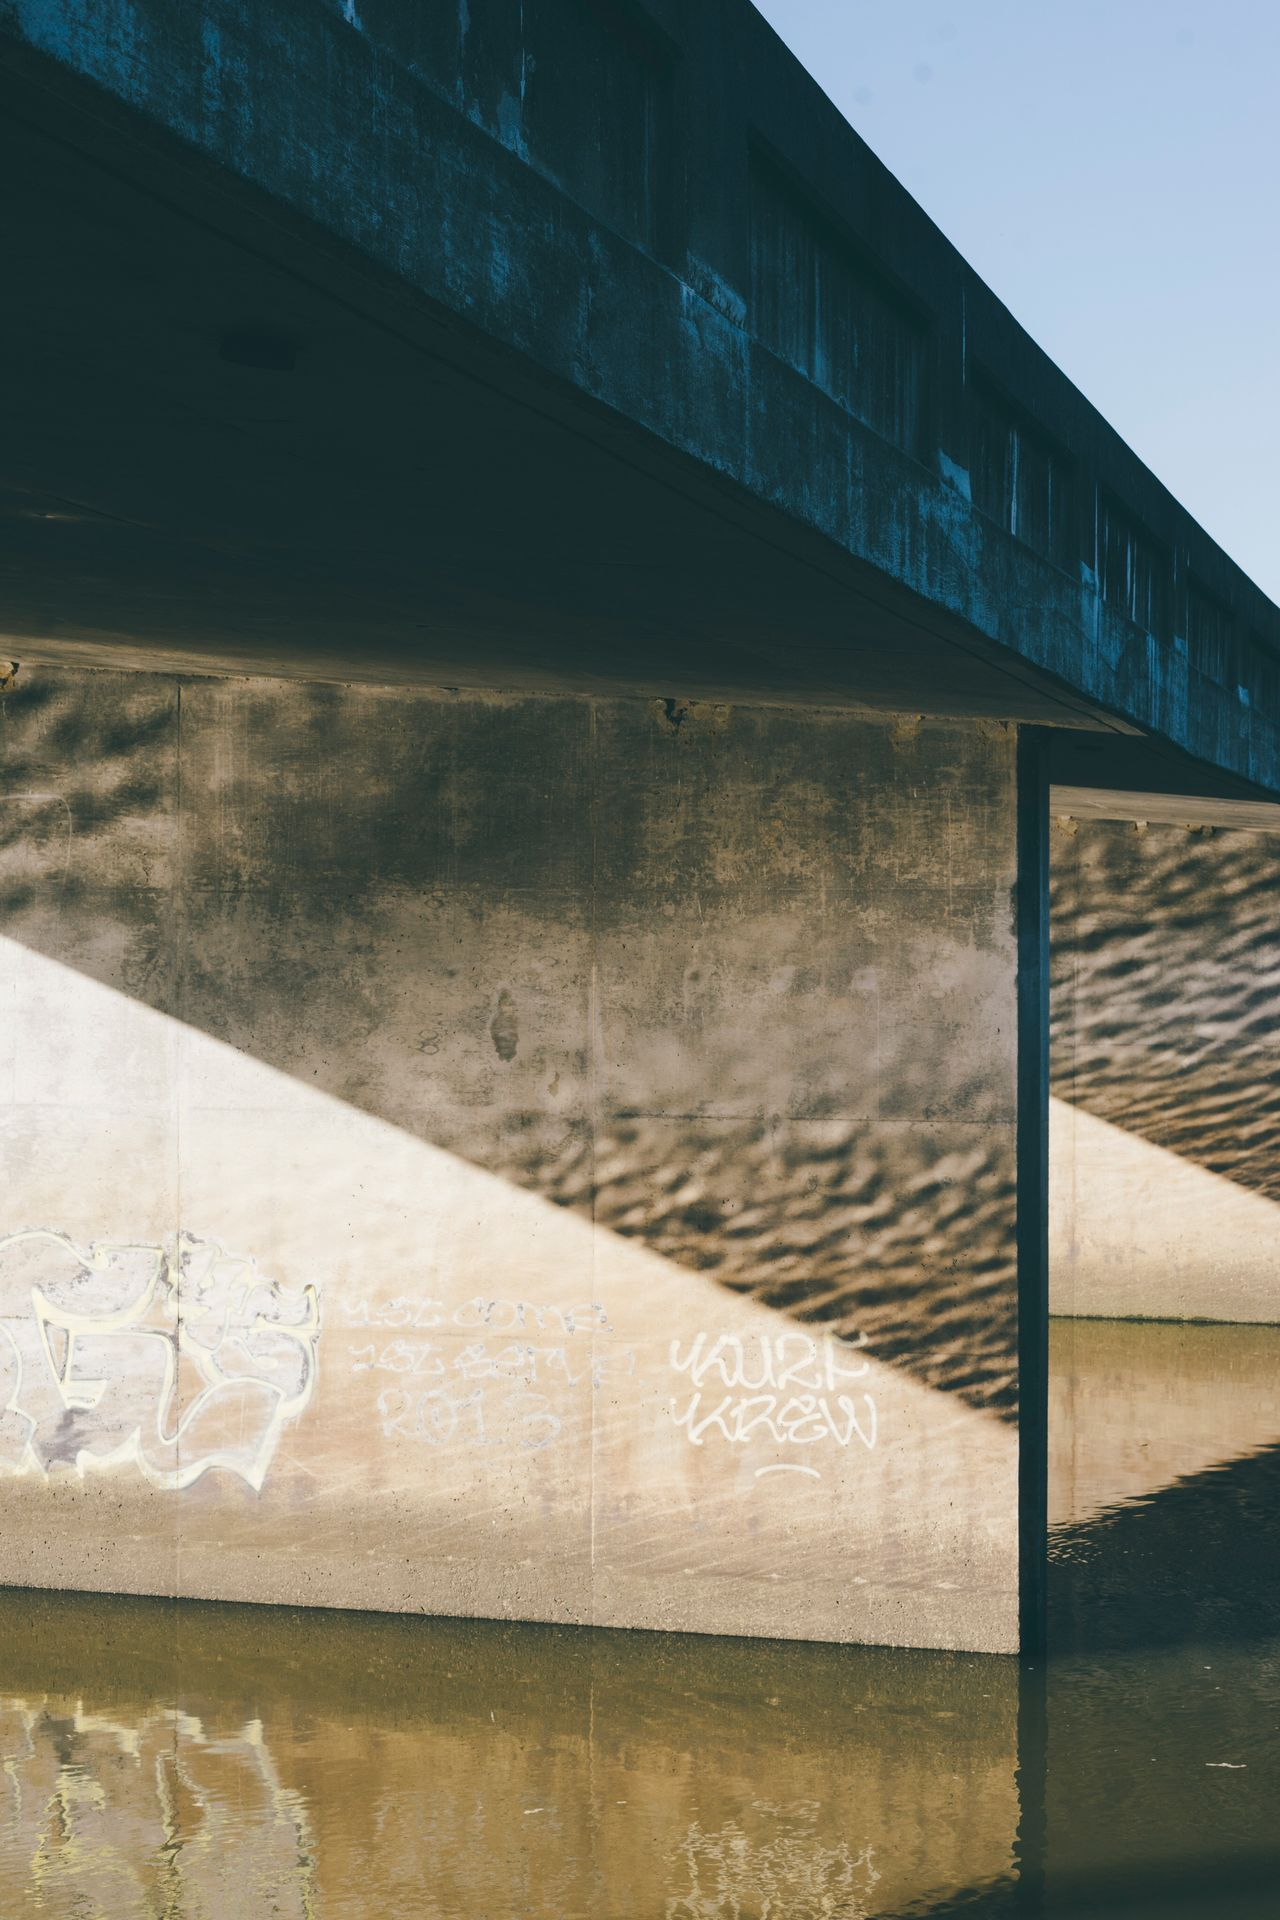 Architecture Built Structure Day No People Outdoors Sky Rural Poetry Underpass Reflection